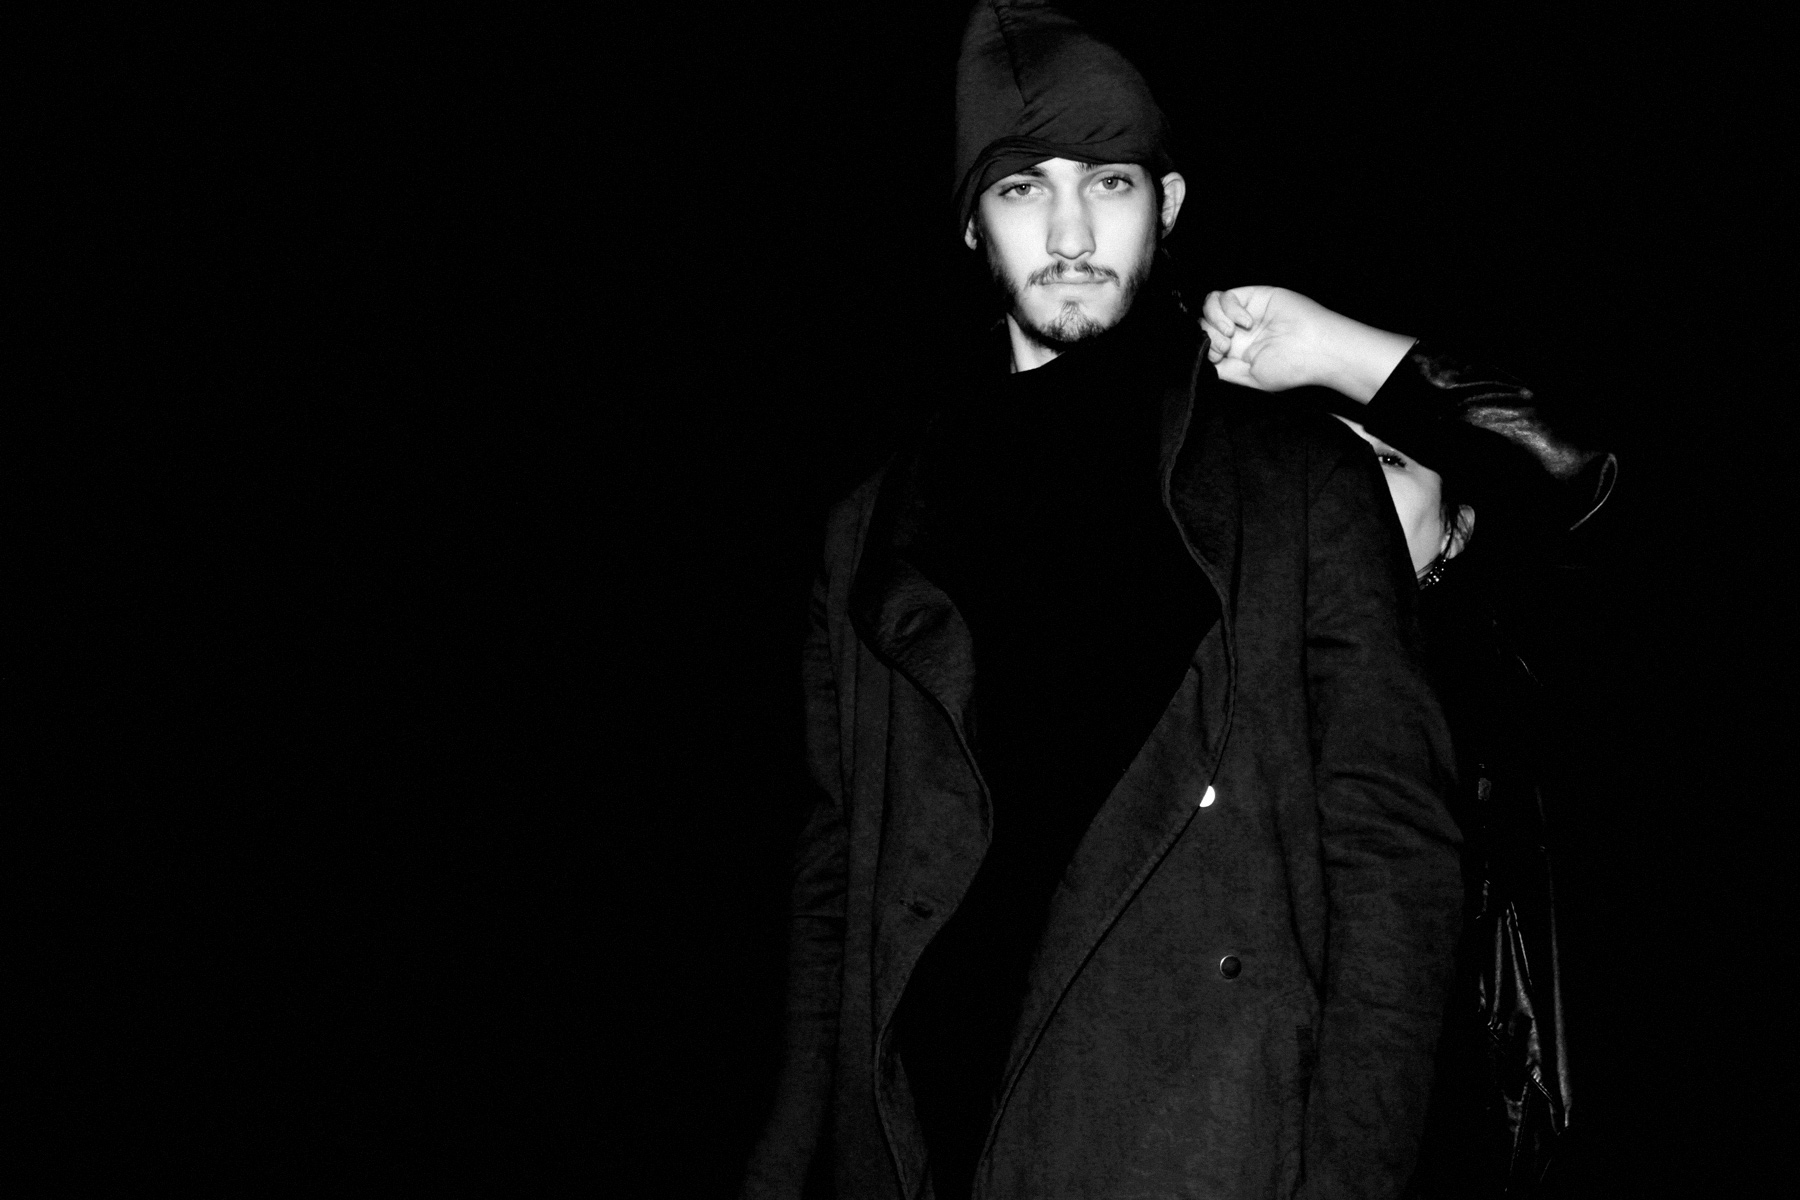 Male model in outerwear